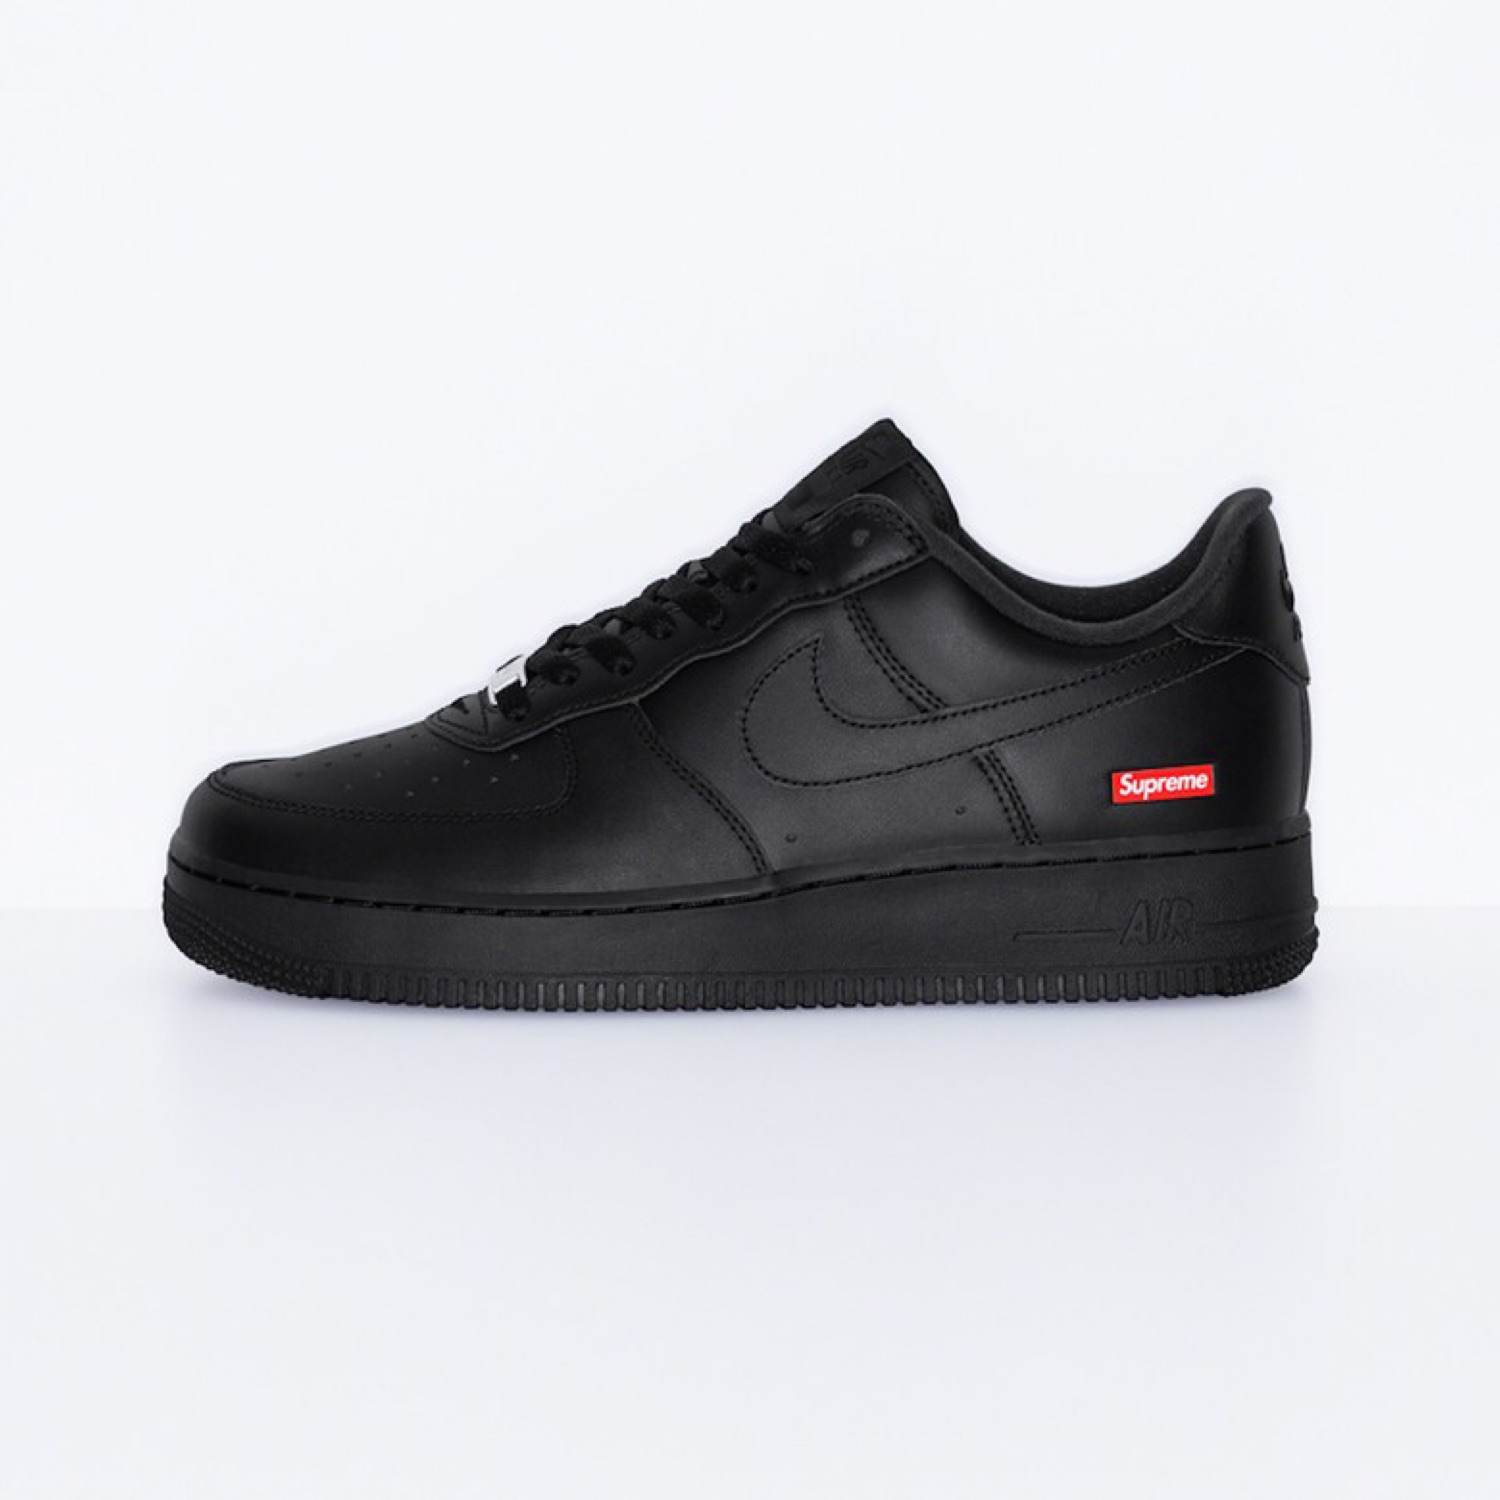 air force 1 suoreme